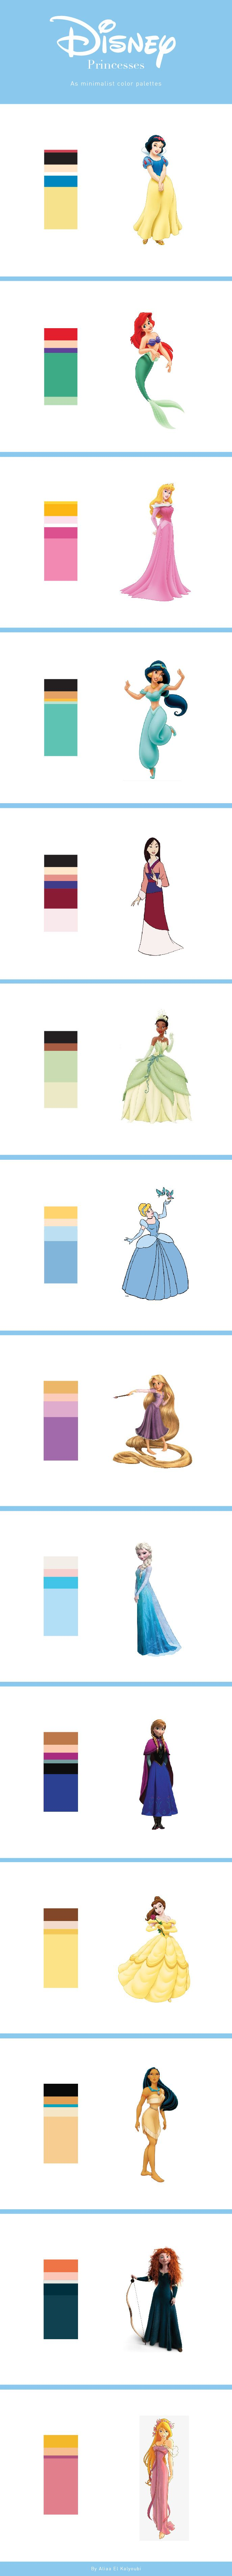 good Disney Princess Signature Colors Part - 3: Minimalist Disney Princesses Color Palettes by Aliaa El Kalyoubi